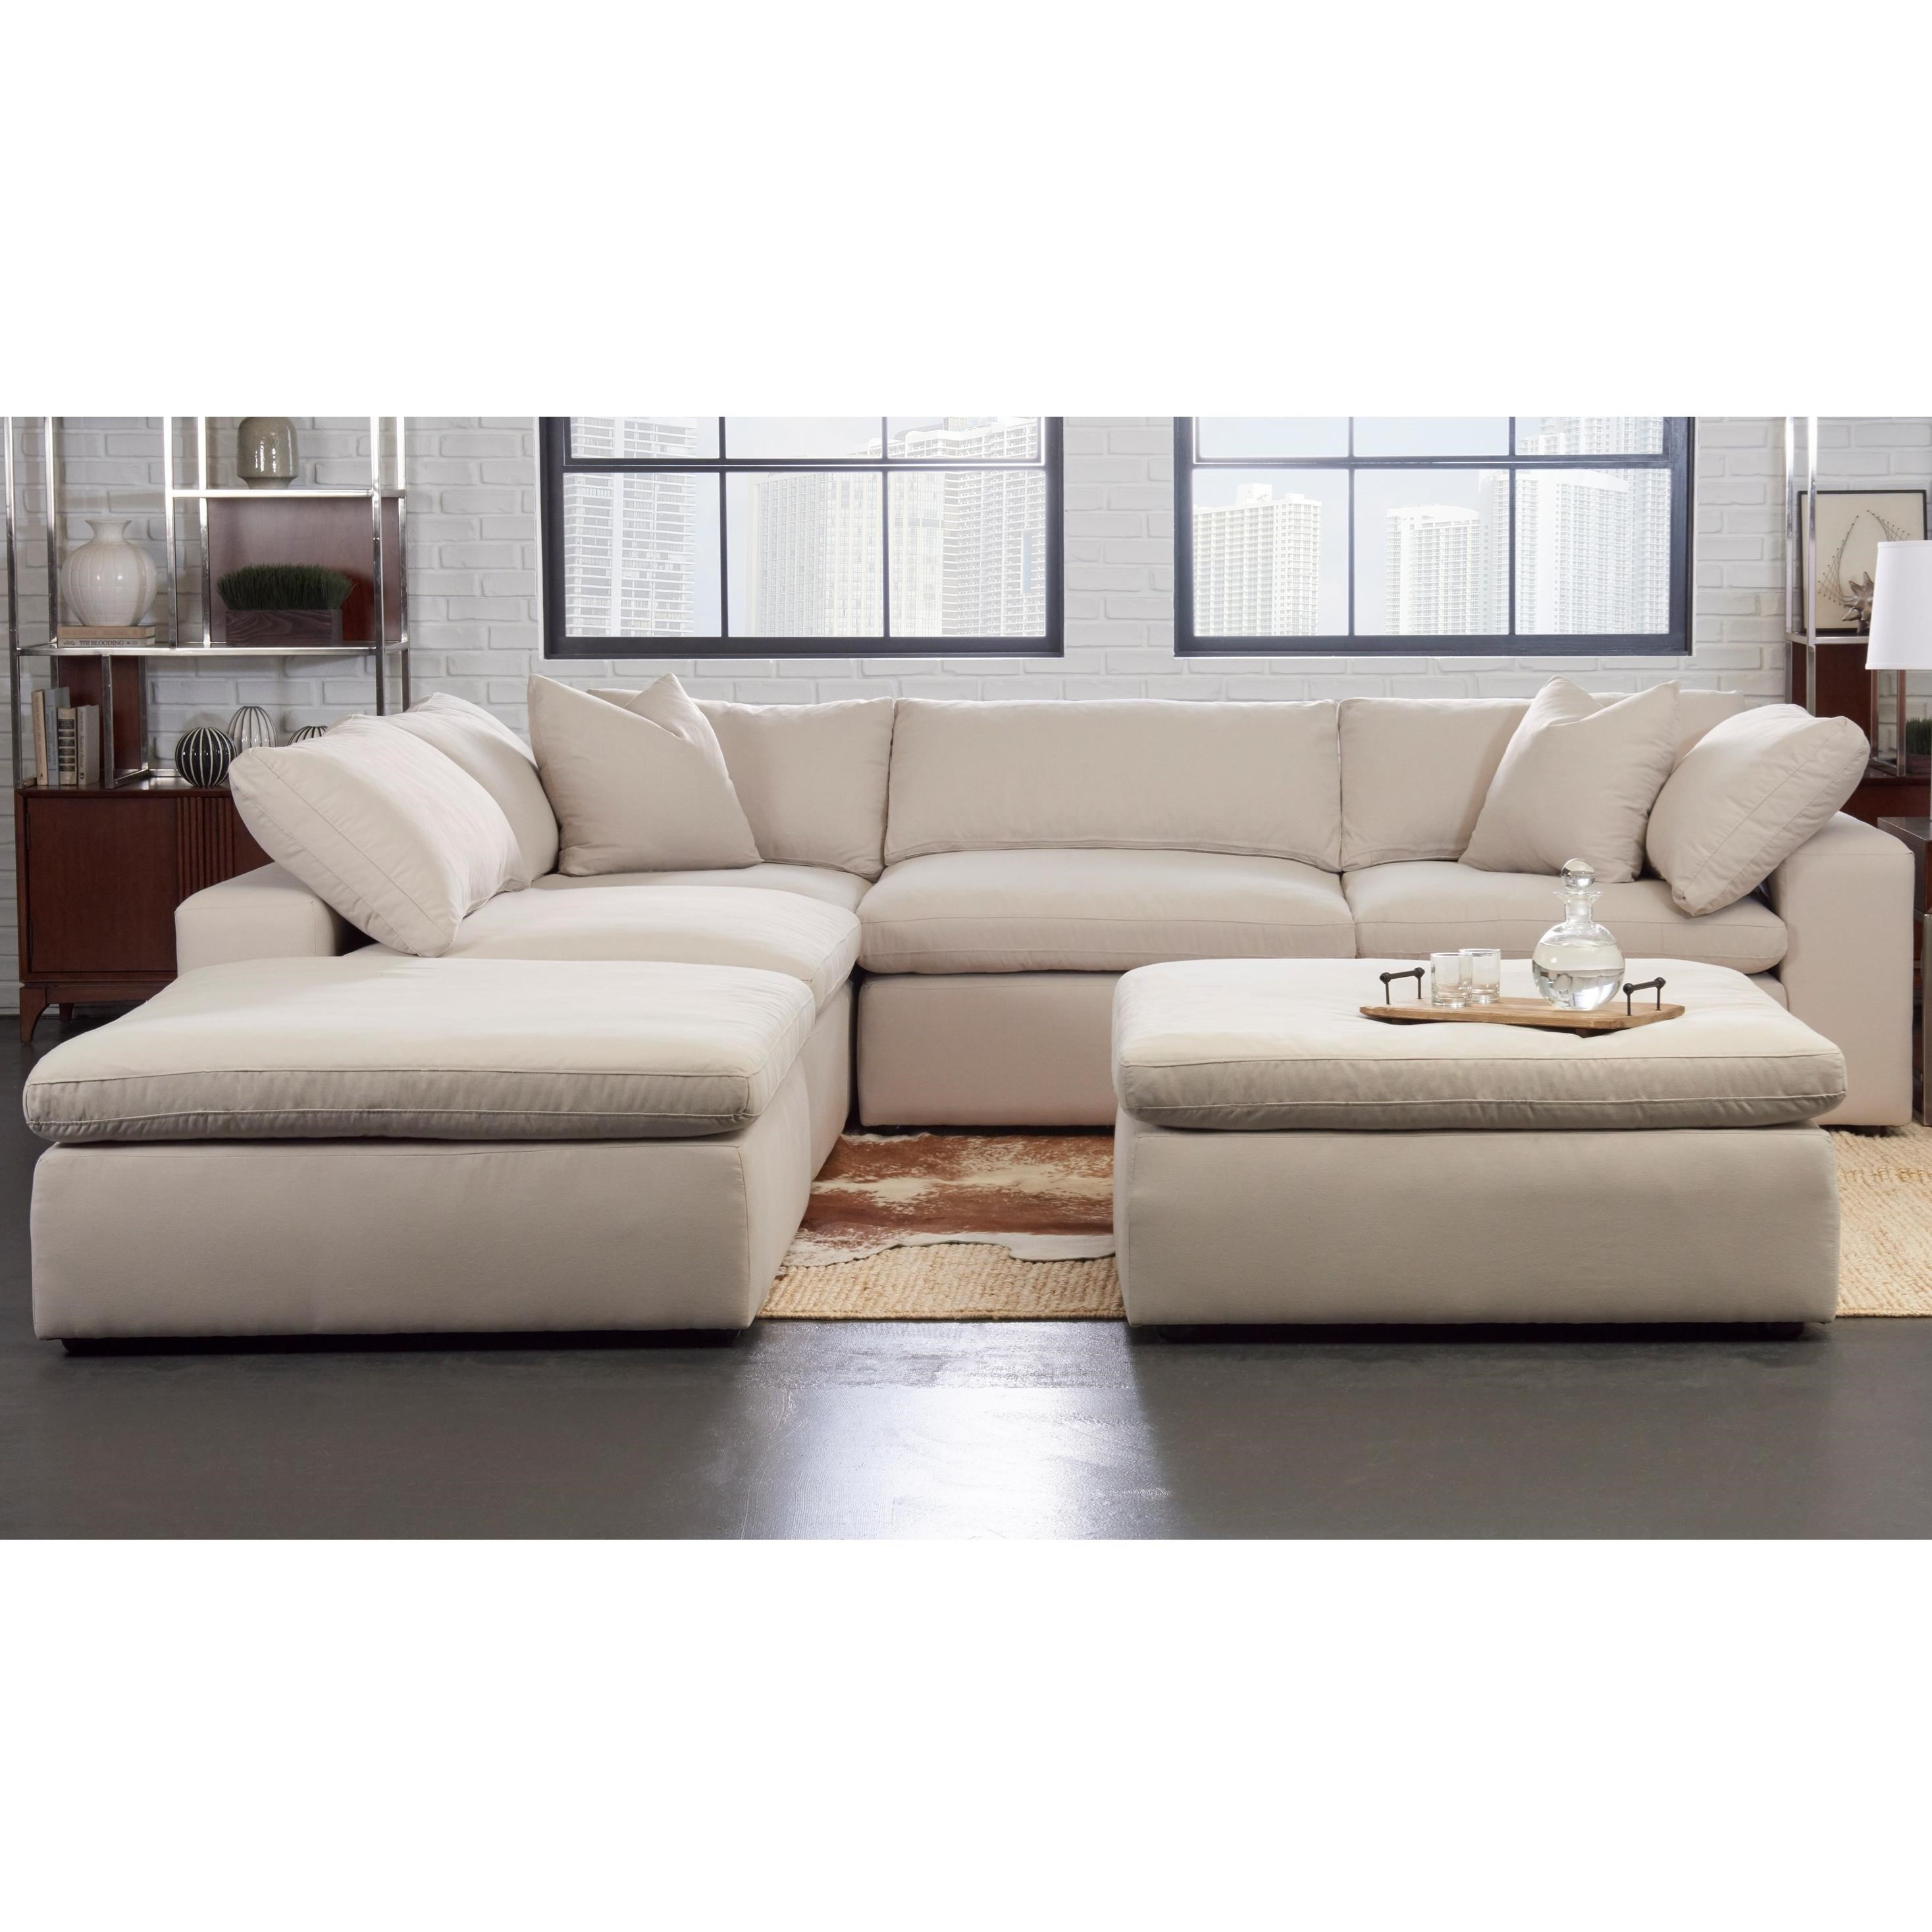 Monterey Modular Sectional Sofa by Klaussner at Catalog Outlet